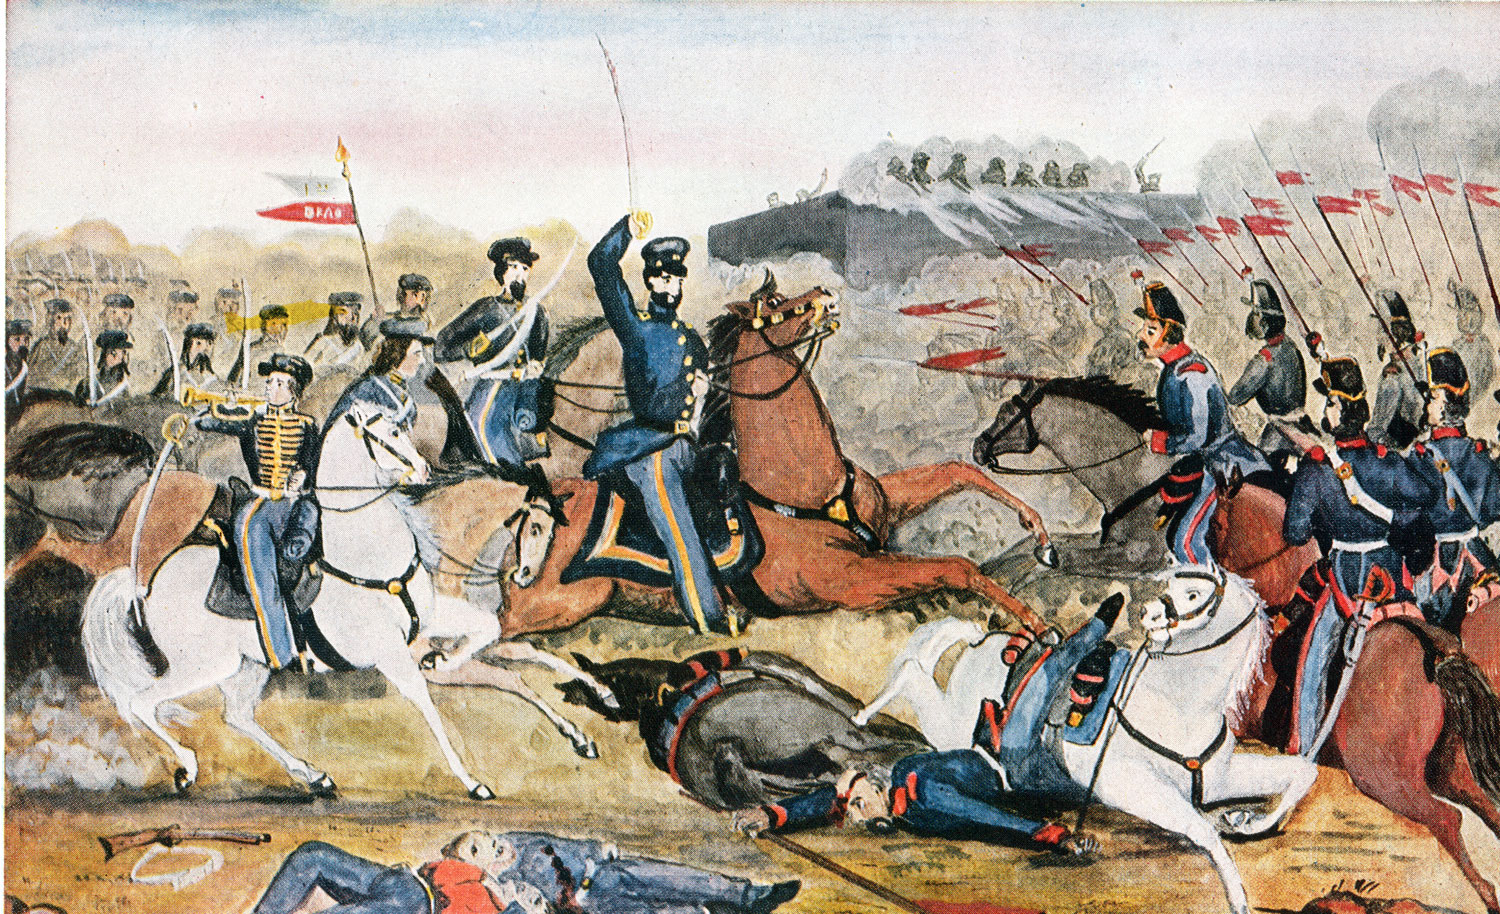 a question of righteousness in the mexican american war Describe the views on the treaty between the mexico and us from the mexican american war some senators opposed the treaty because they argued that the us had no right to any mexican territory other than texas.